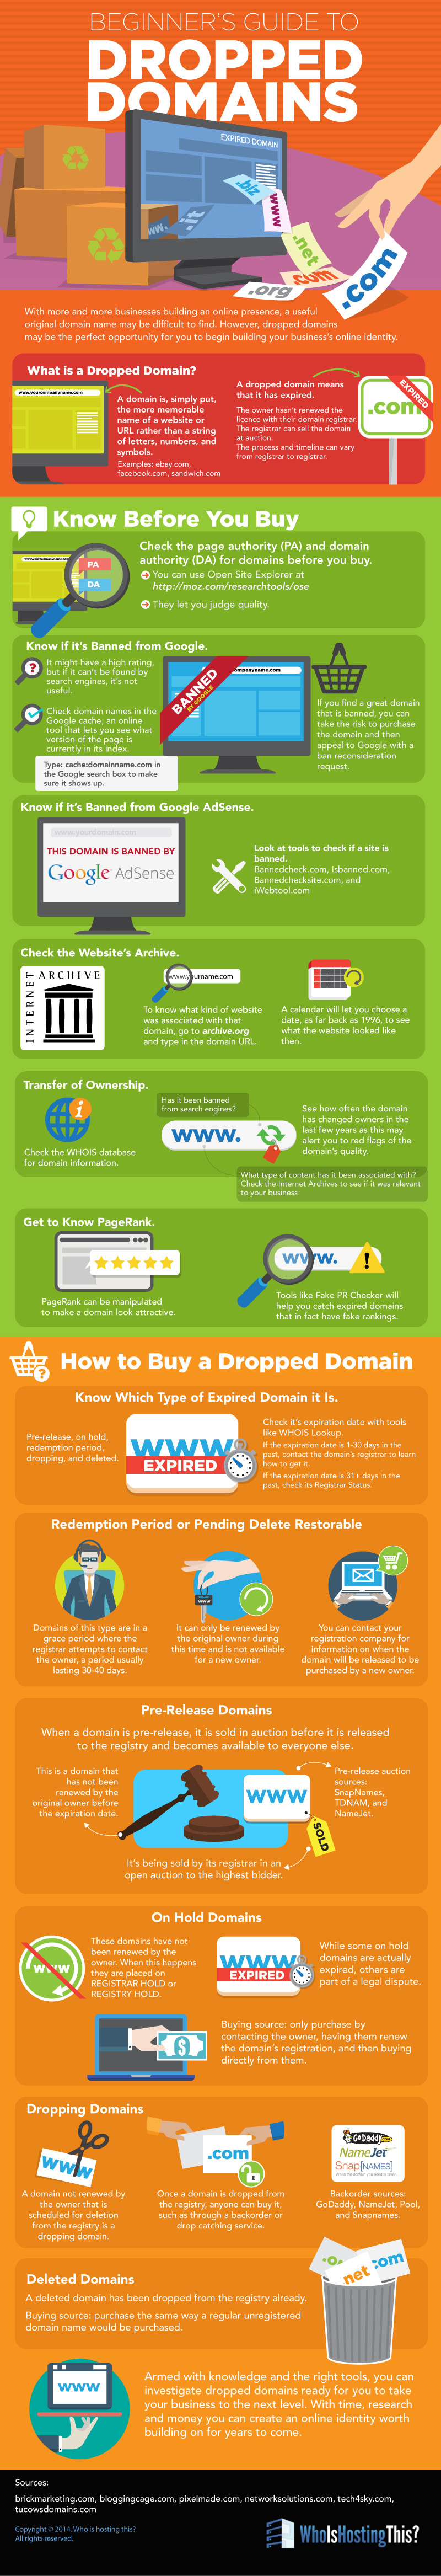 Buying-Dropped-Domains